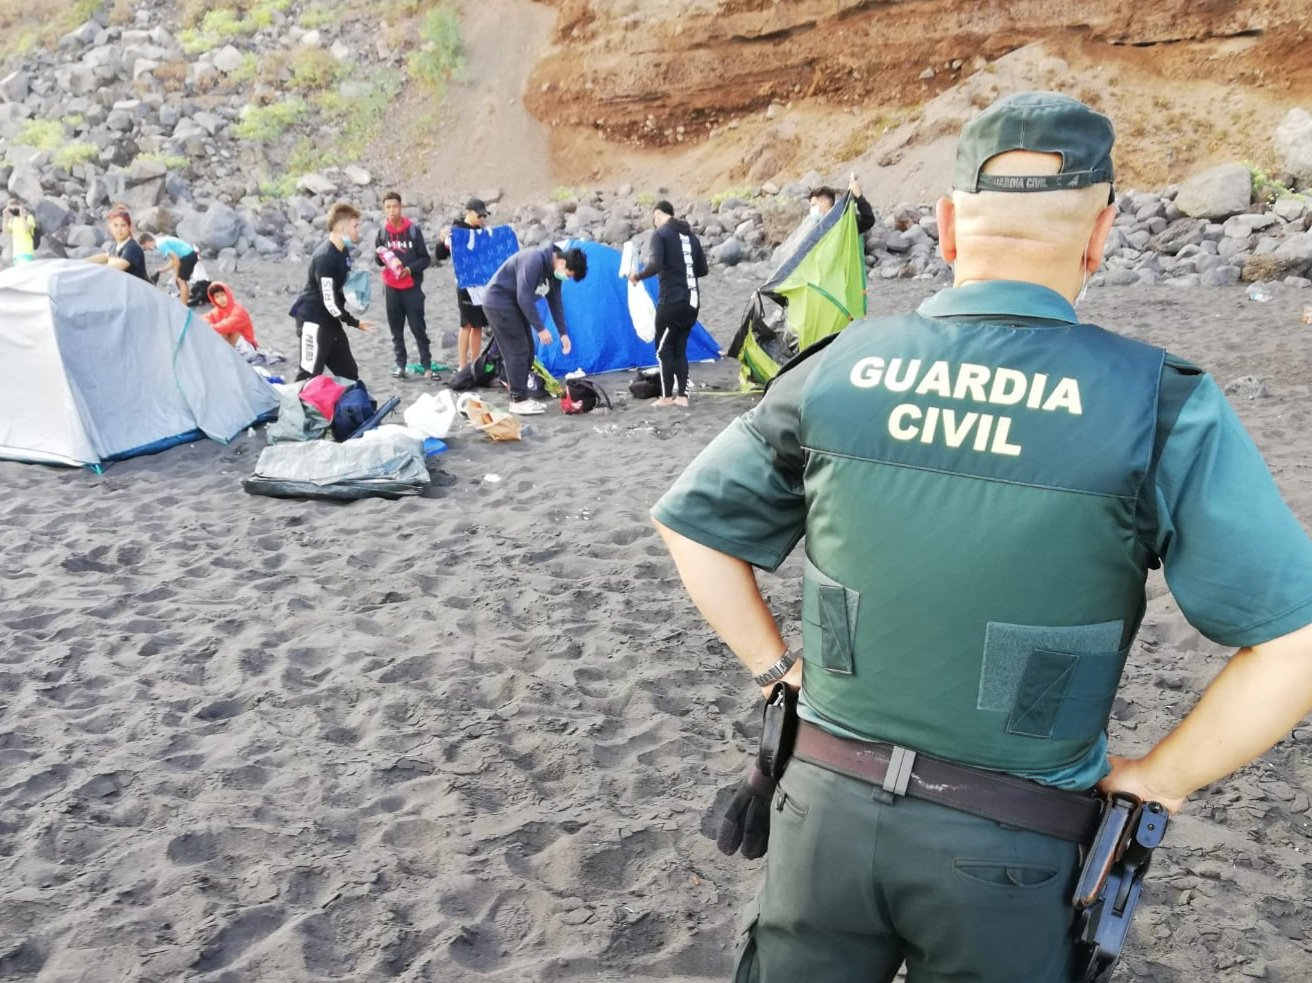 Intentionally Trying To Catch And Spread Covid-19? 62 Campers Kicked Off Beach